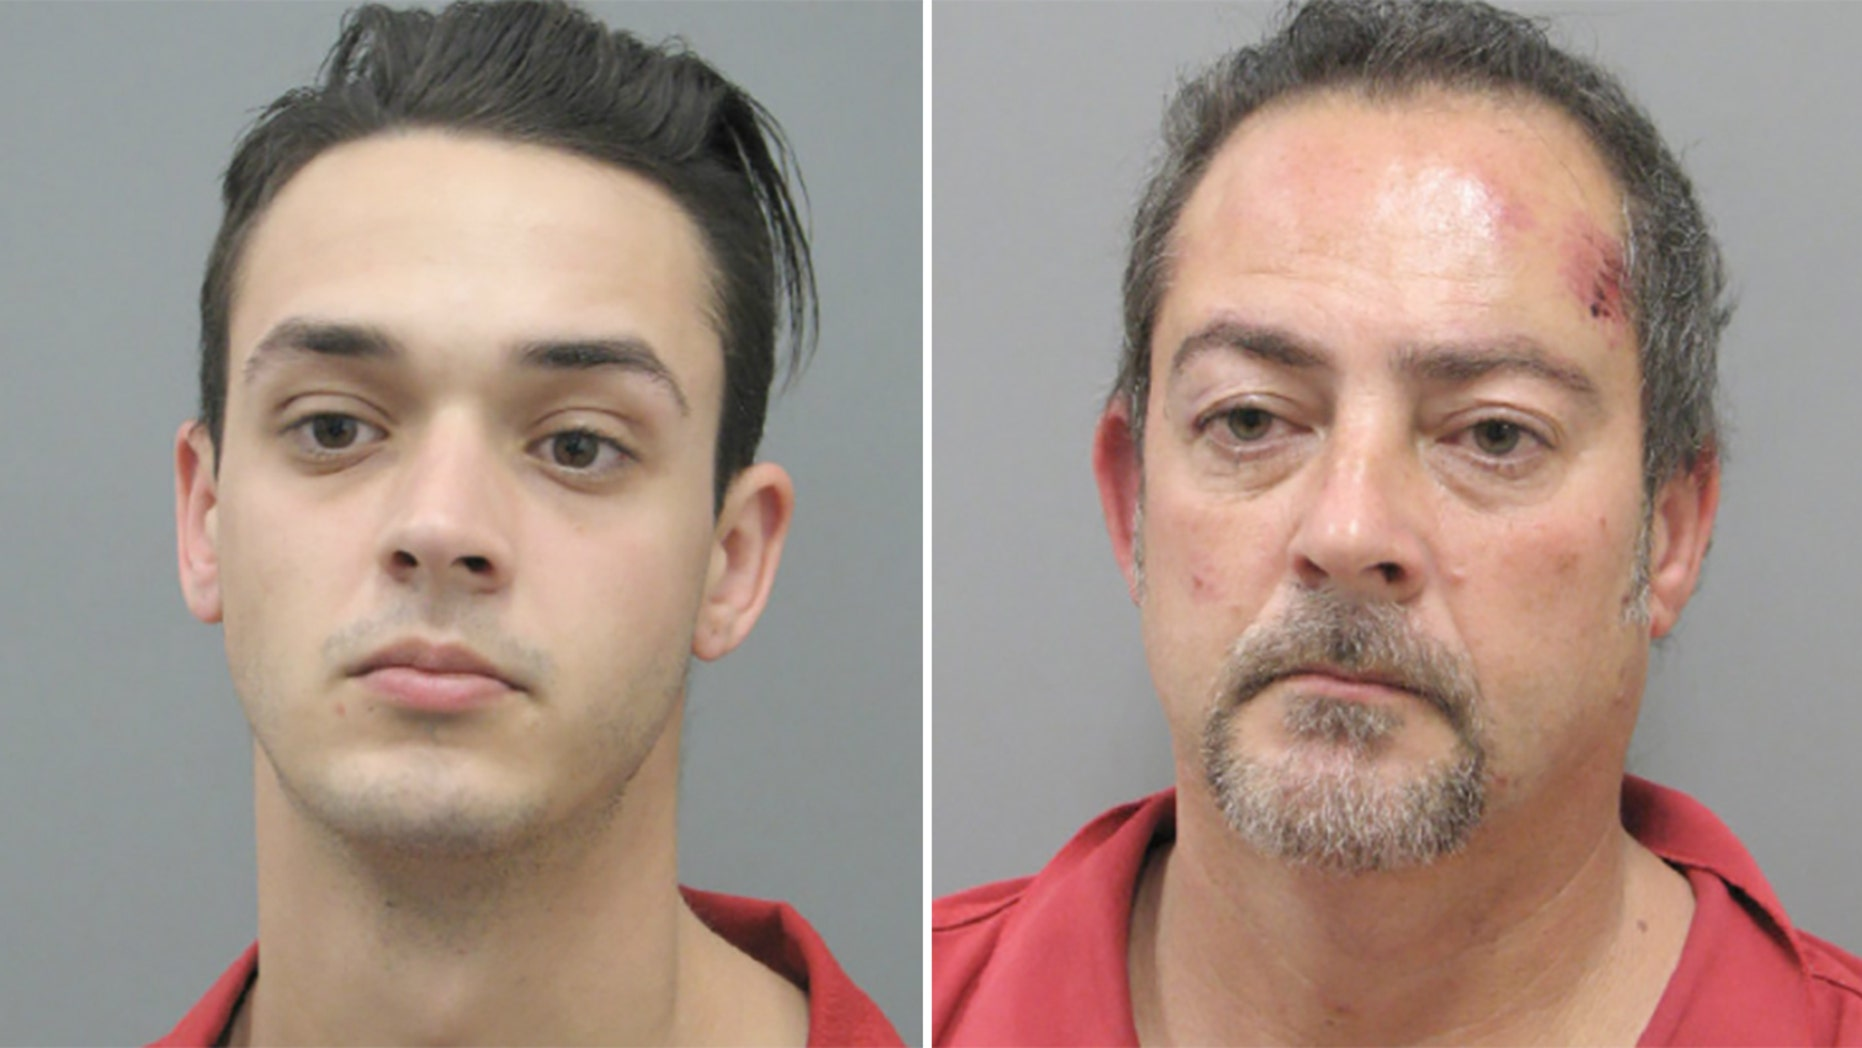 Jessy James, 24, and his father Jeffrey James, 53, were sentenced to federal prison Friday for a series of armed robberies near Las Vegas last year.